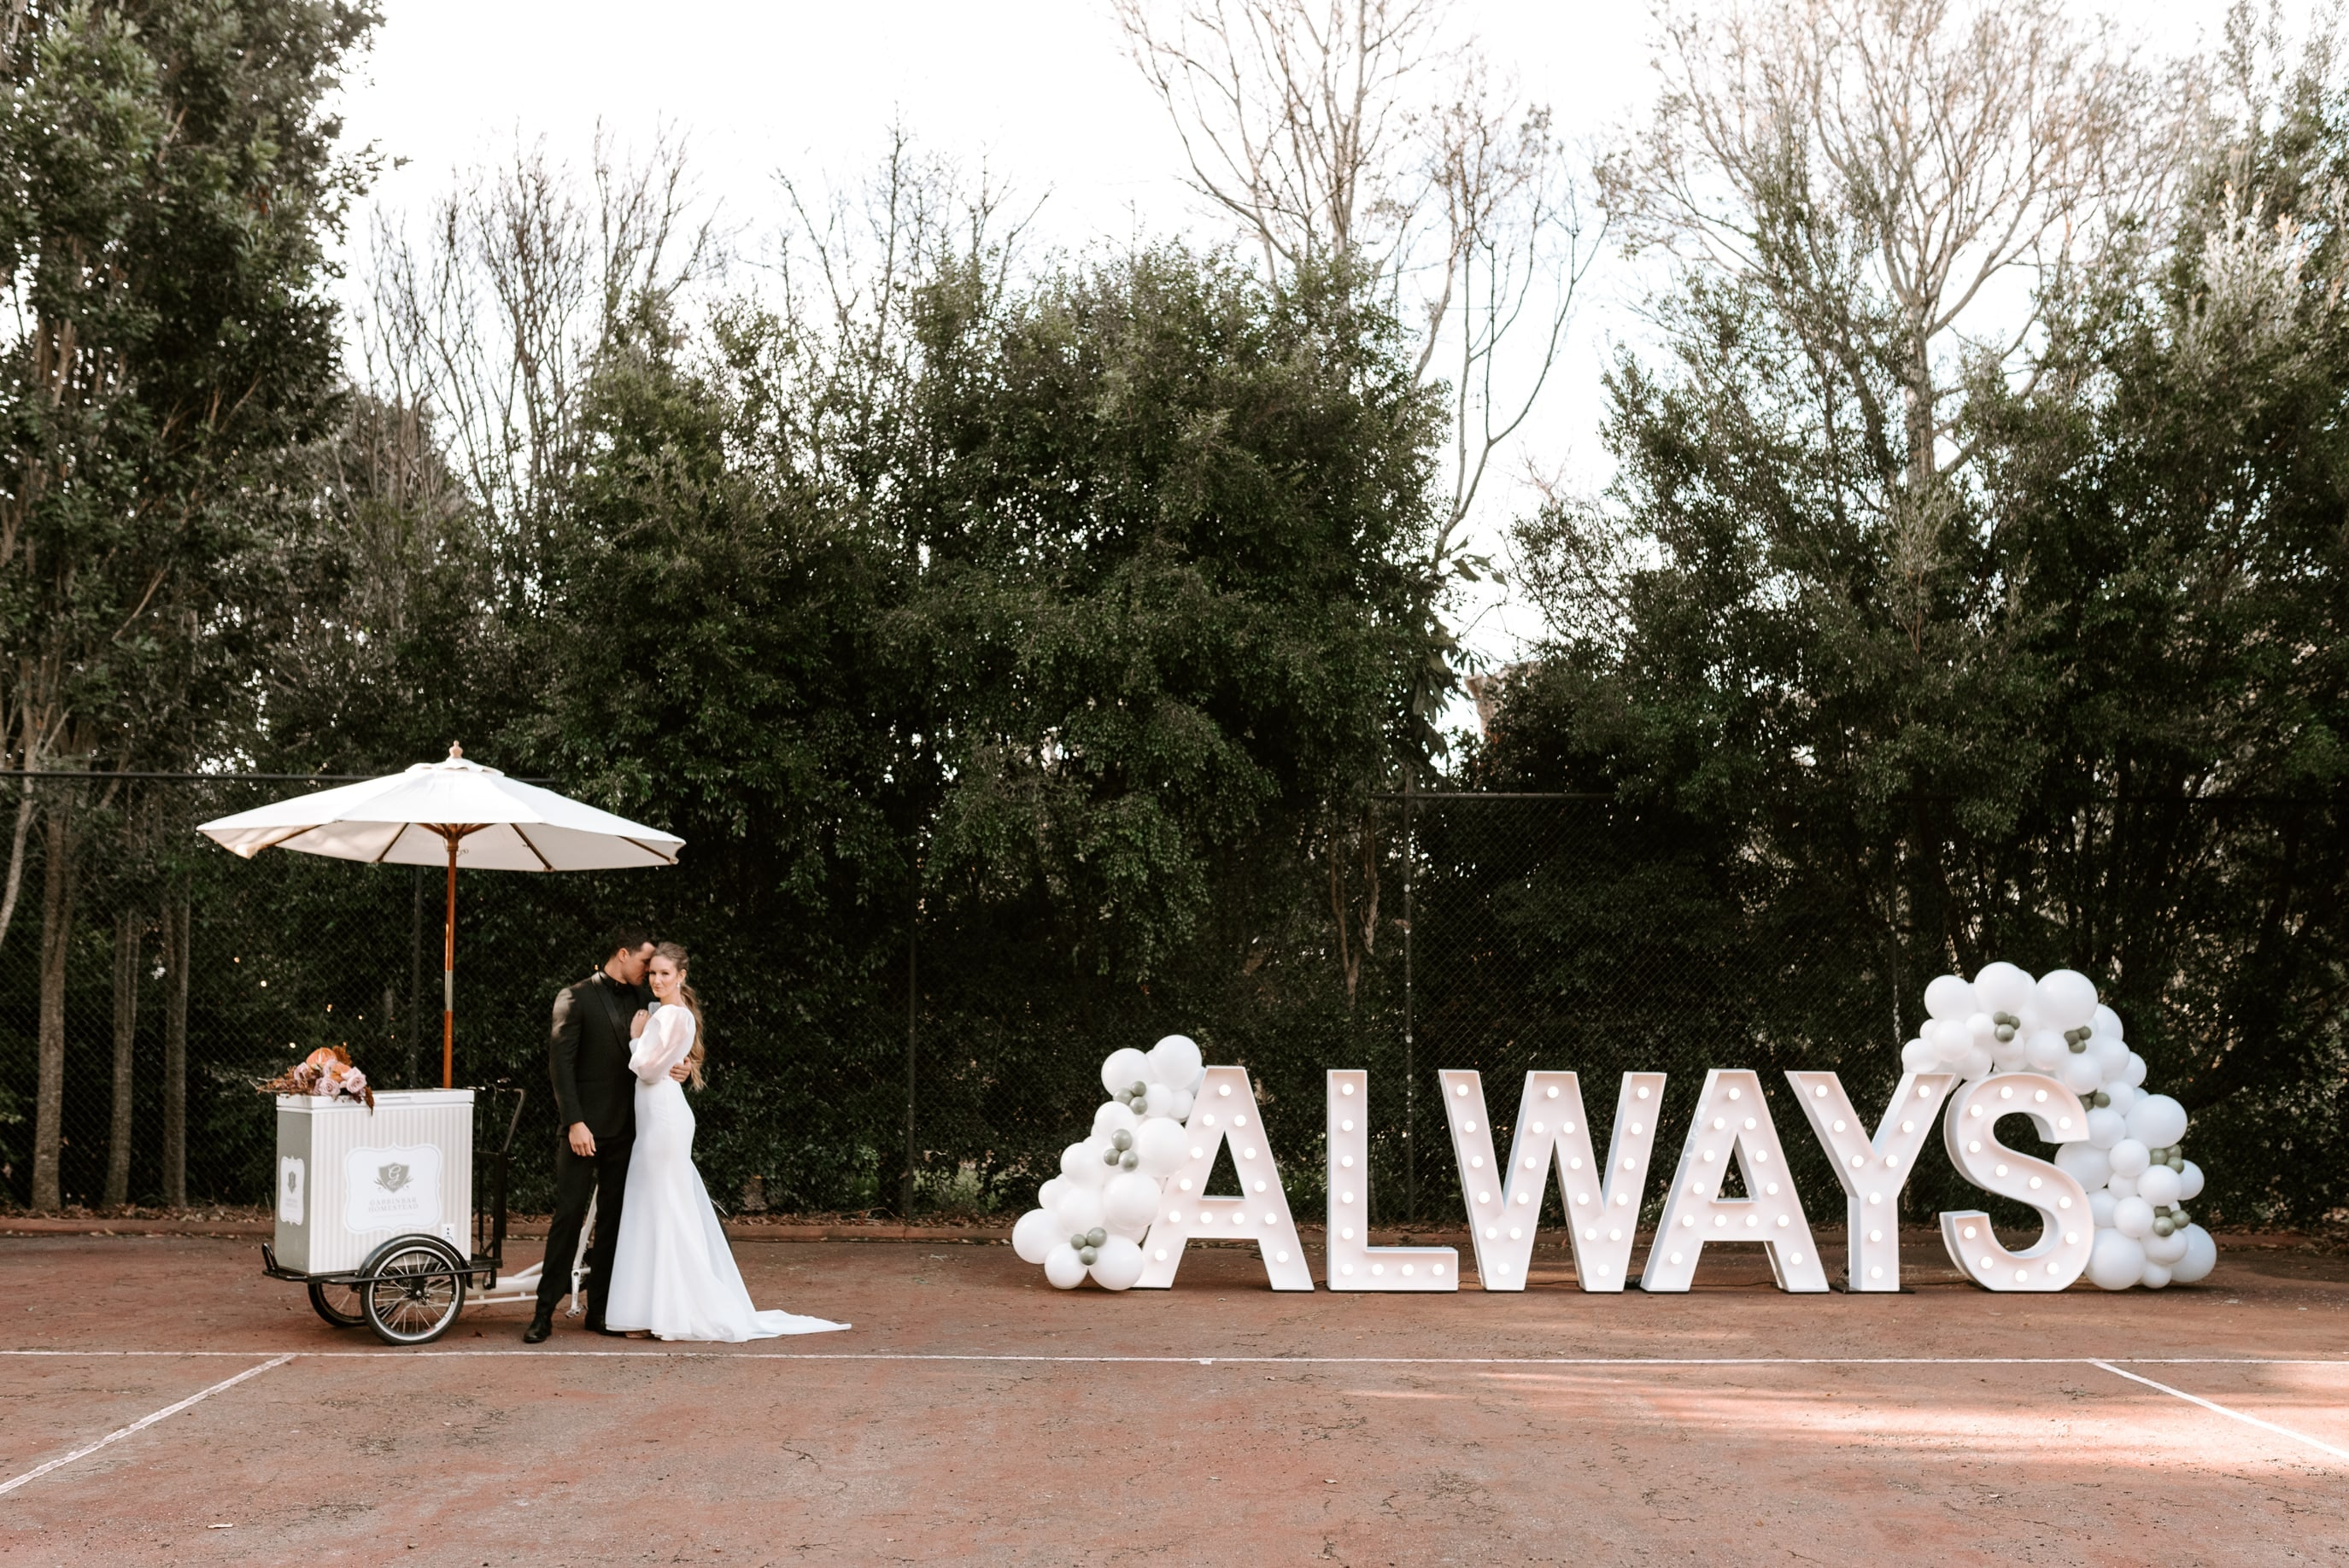 Light-up sign that says 'ALWAYS' decorated with balloons with a bride and groom standing next to it